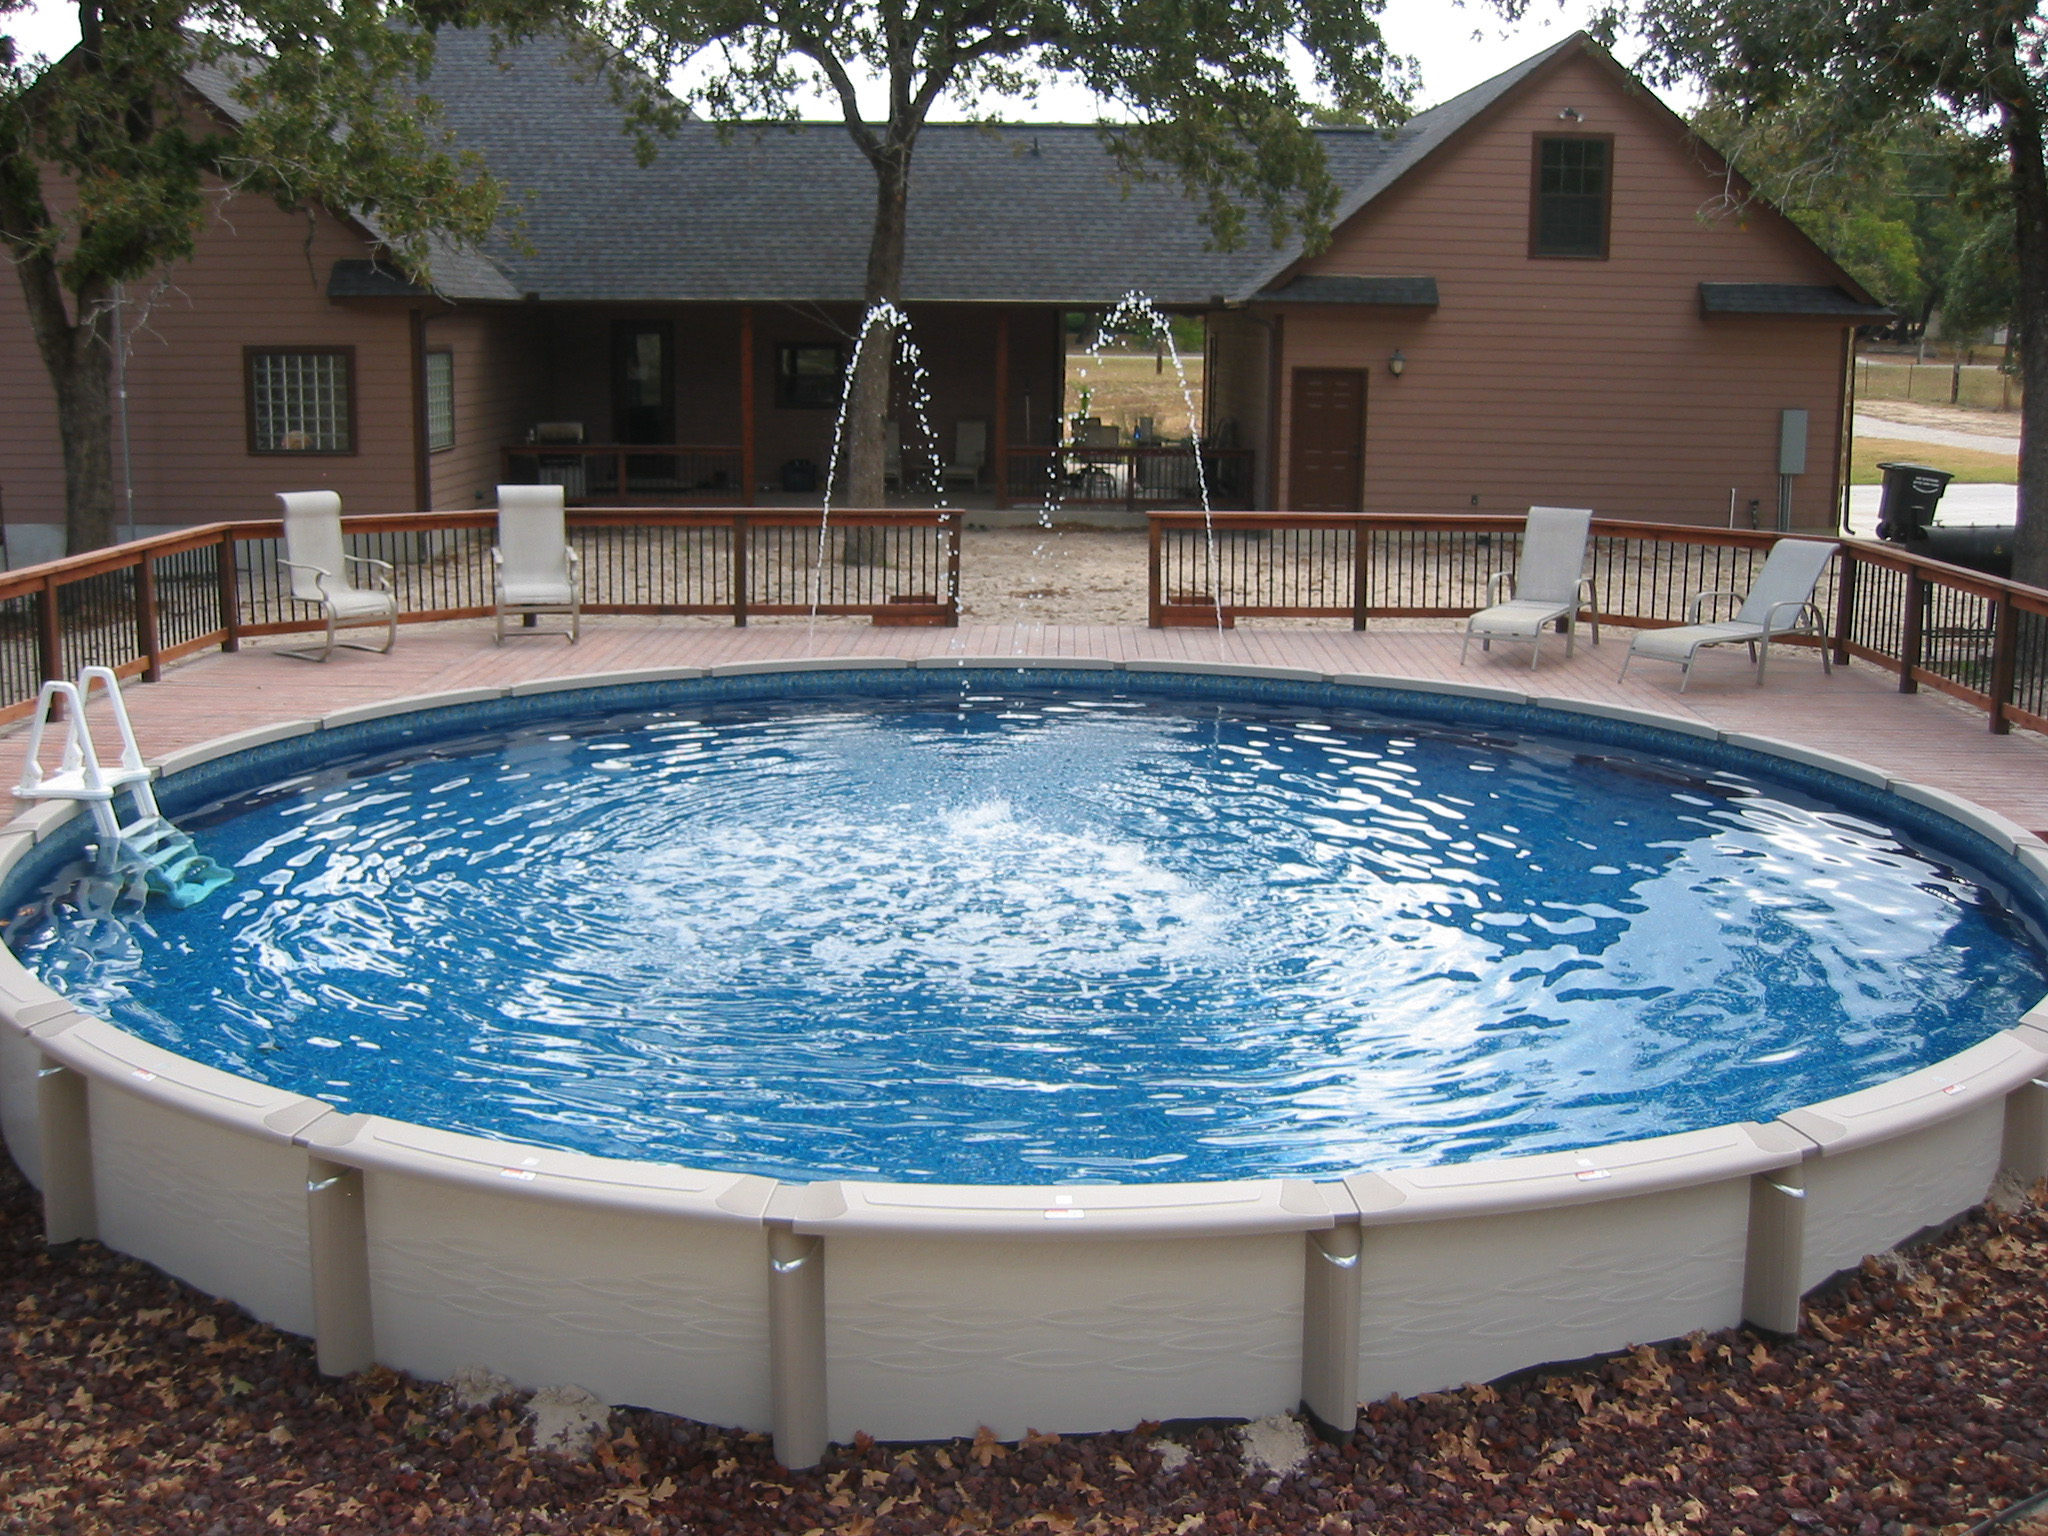 Best above ground swimming pools design on vine for Best pool design 2014